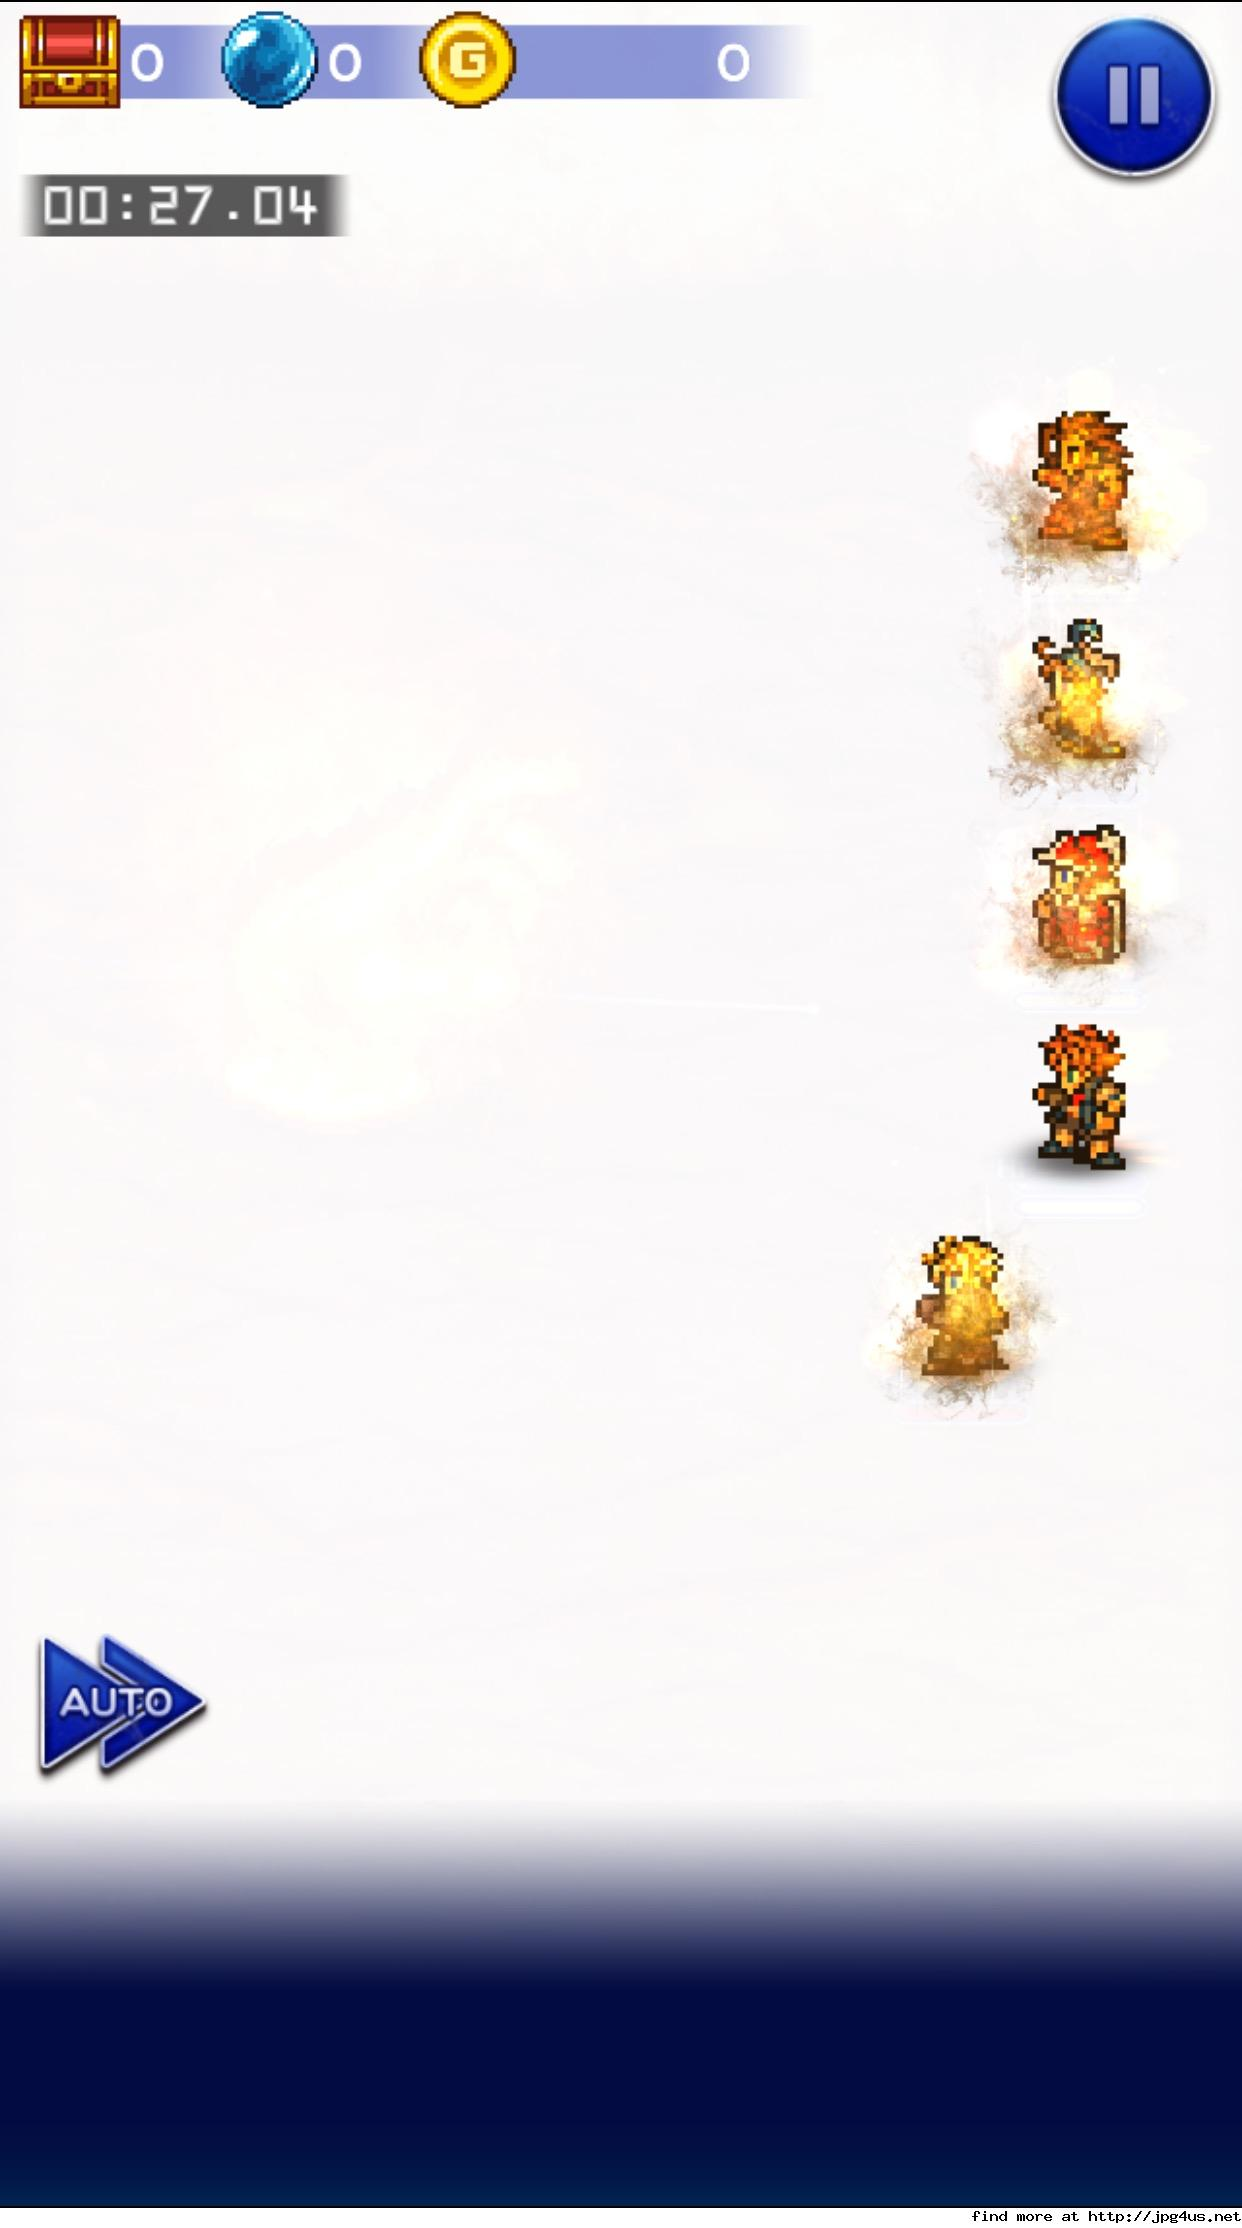 【完全無課金】FFRK FINAL FANTASY Record Keeper Lv25 	->画像>39枚